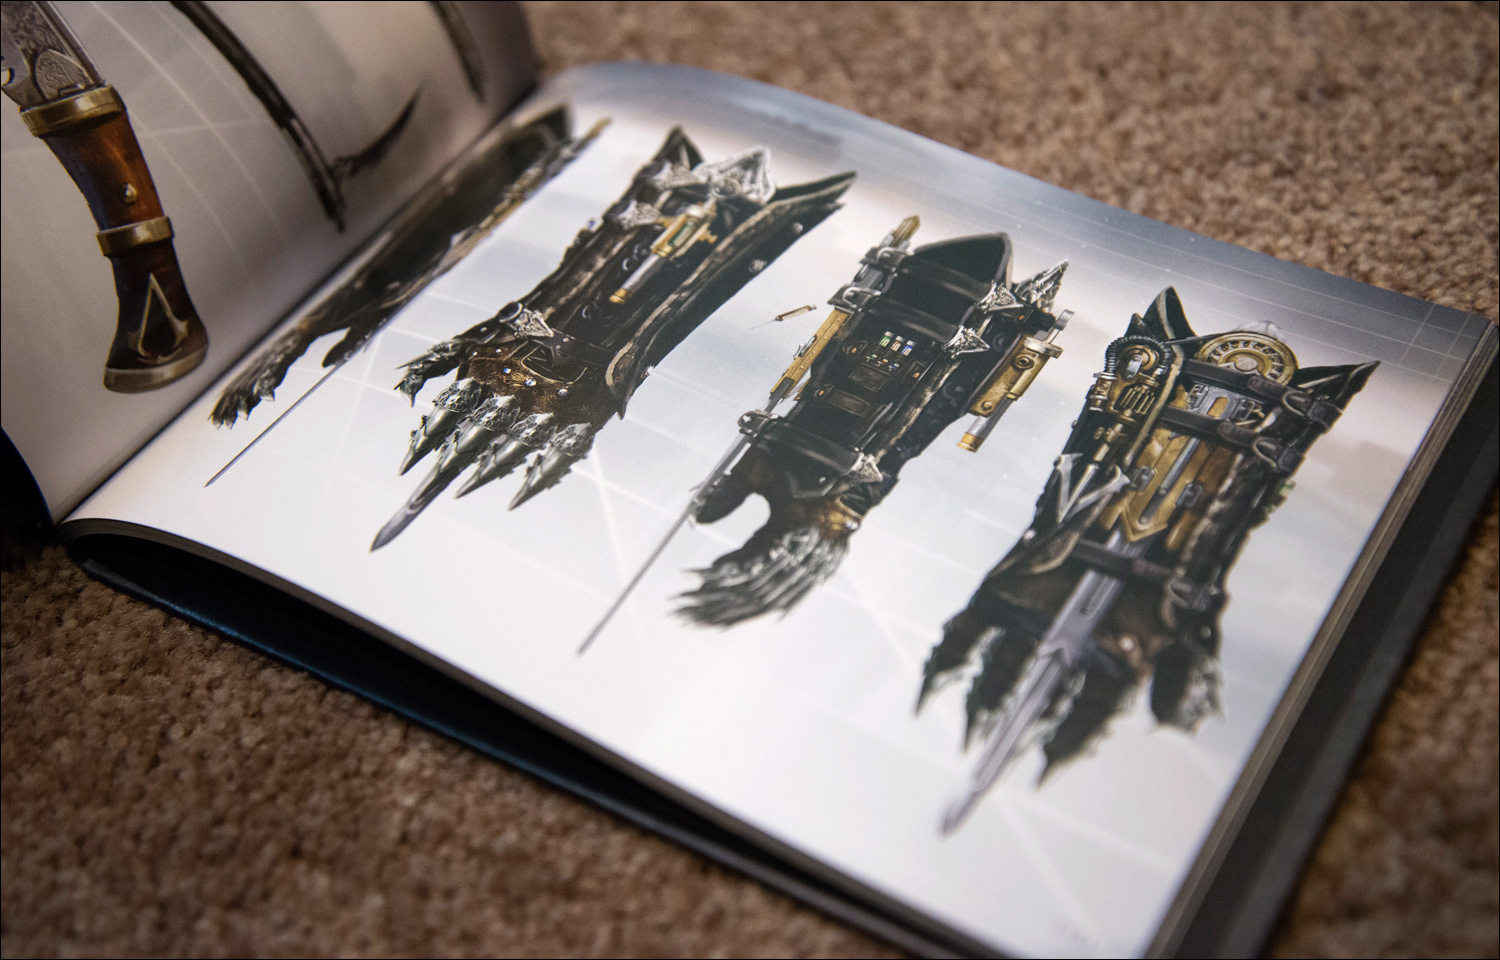 Assassins-Creed-Syndicate-Rooks-Edition-Artbook-Hidden-Blades